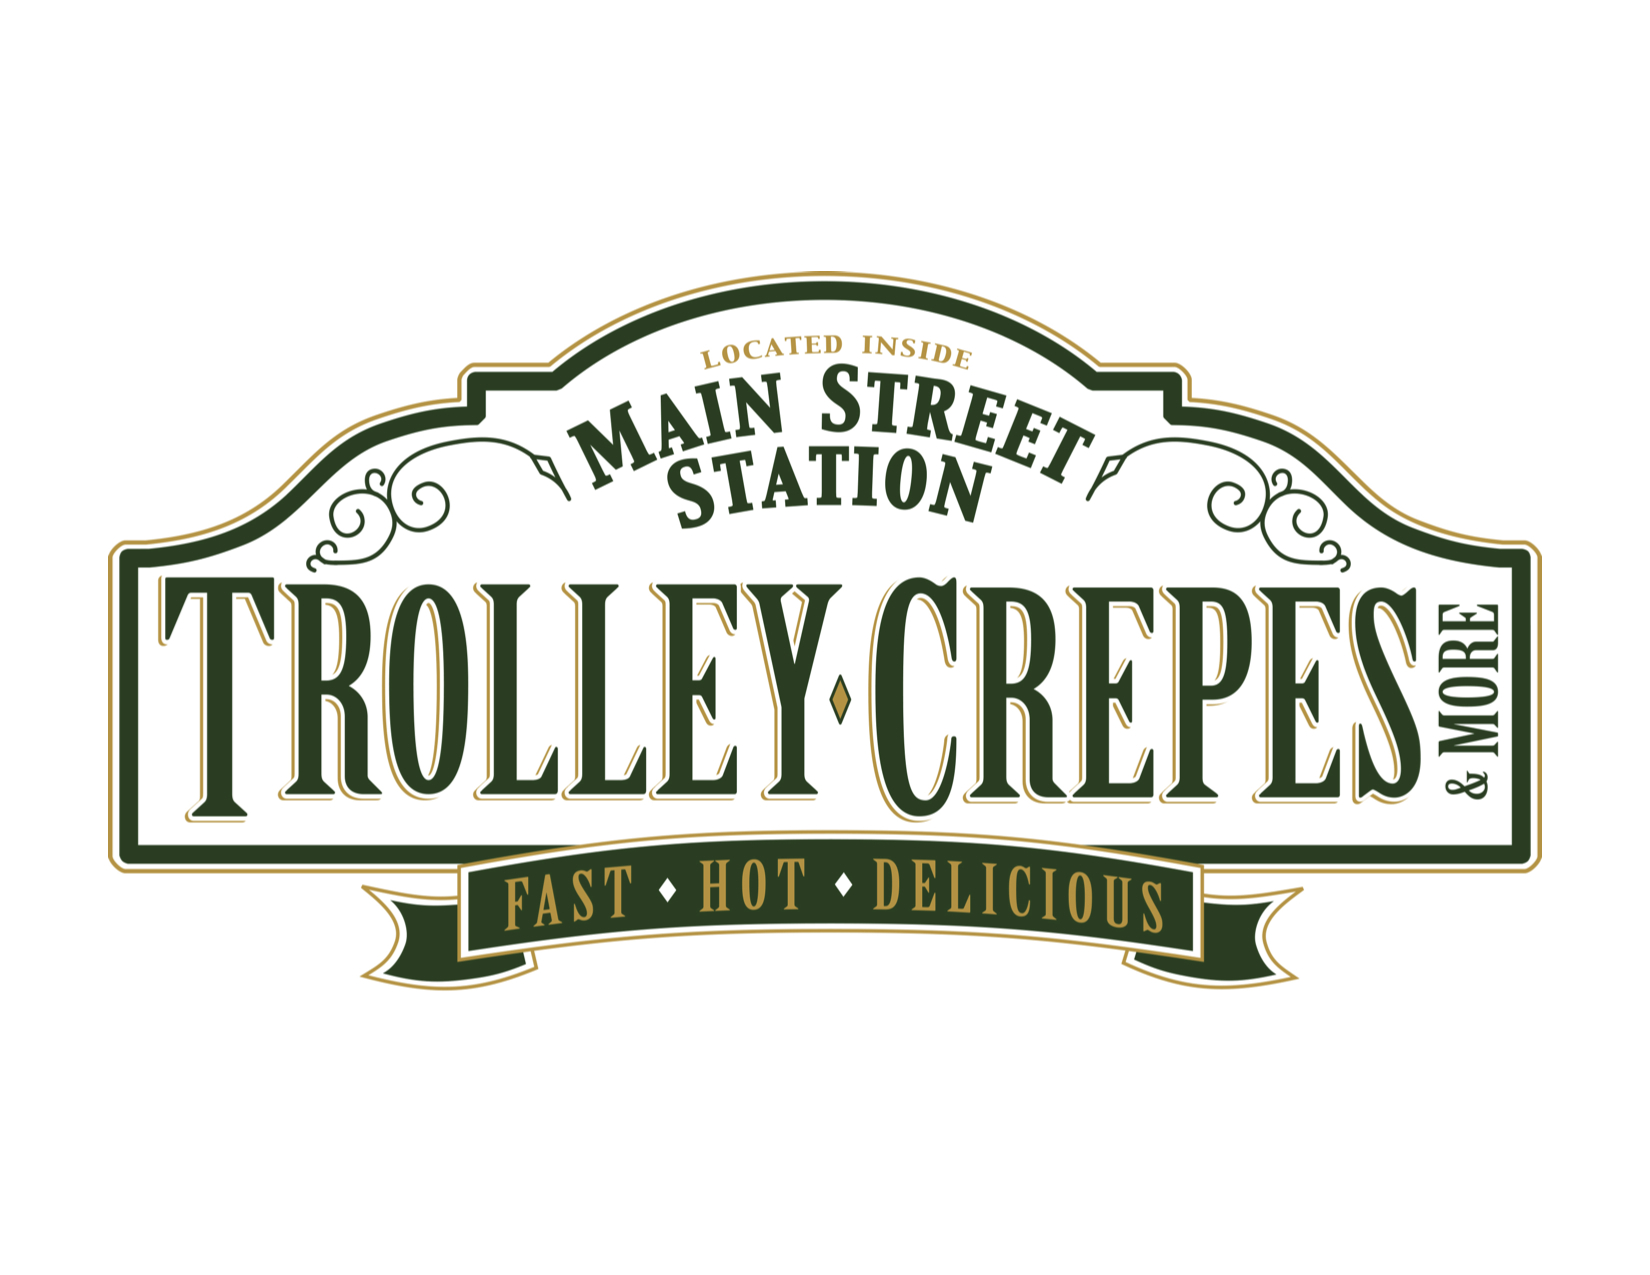 Trolley Crepes Breckenridge.jpg